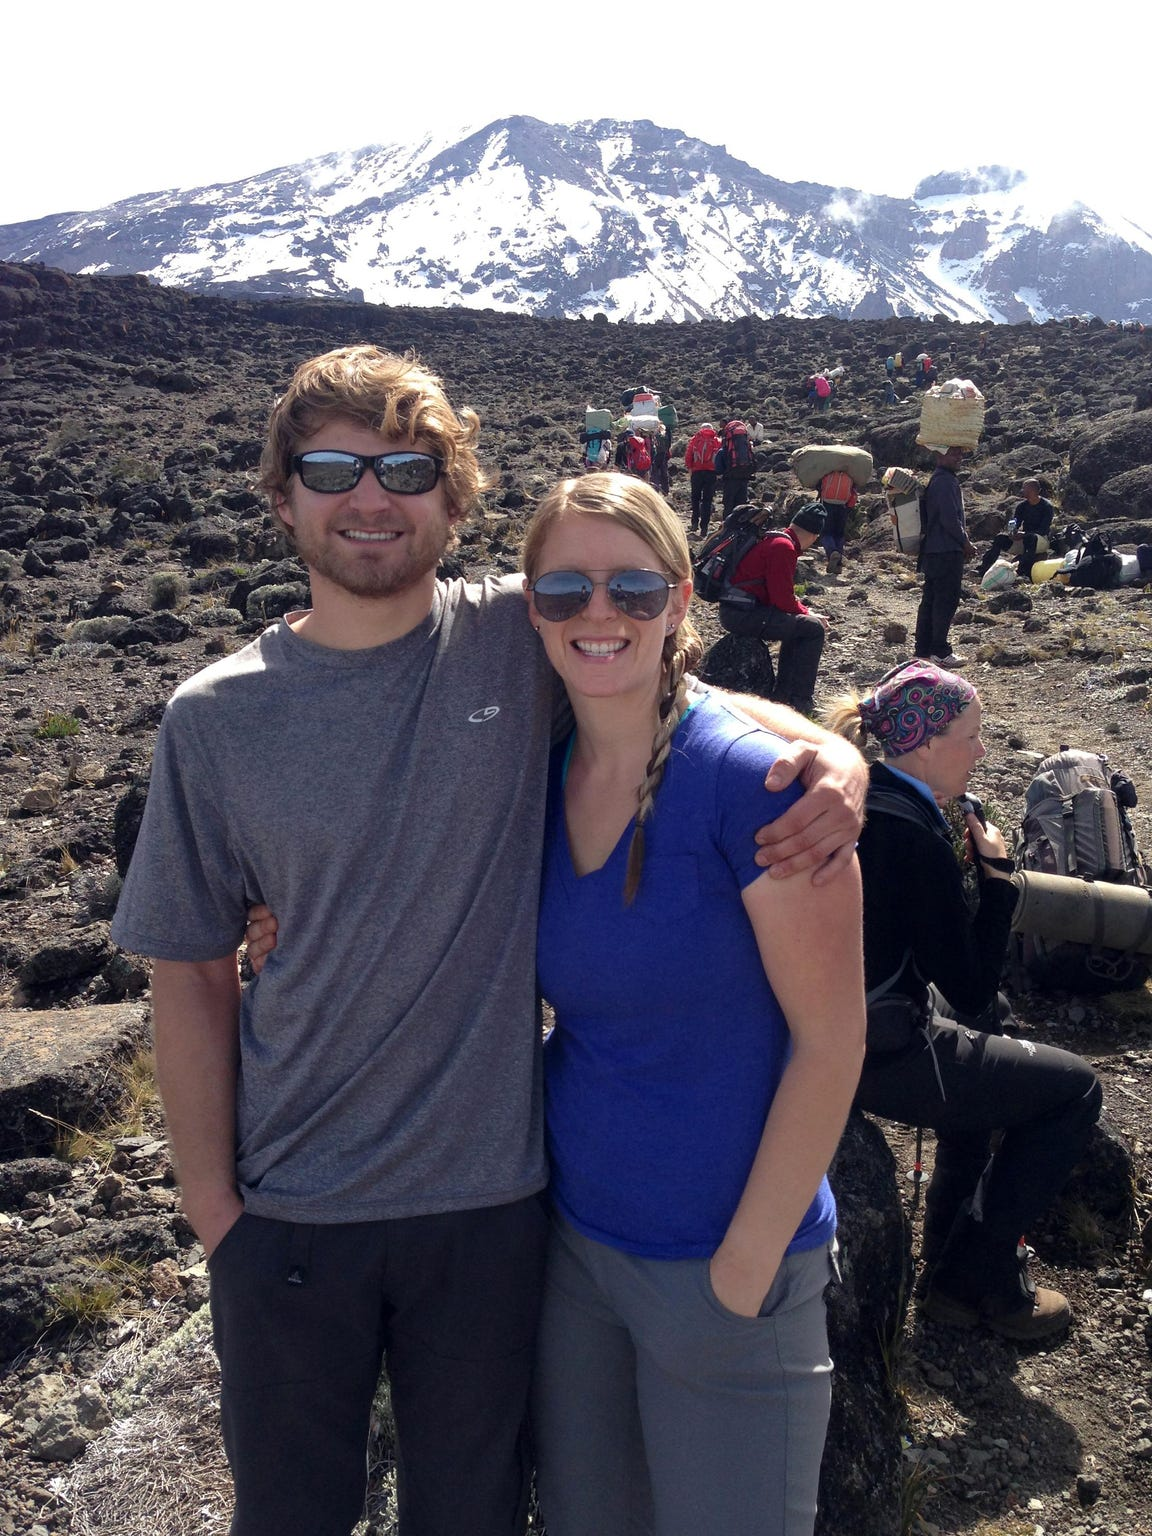 Tommy and Alison Fountain are photographed on Mount Kilimanjaro on Jan. 26, 2013 in Tanzania.